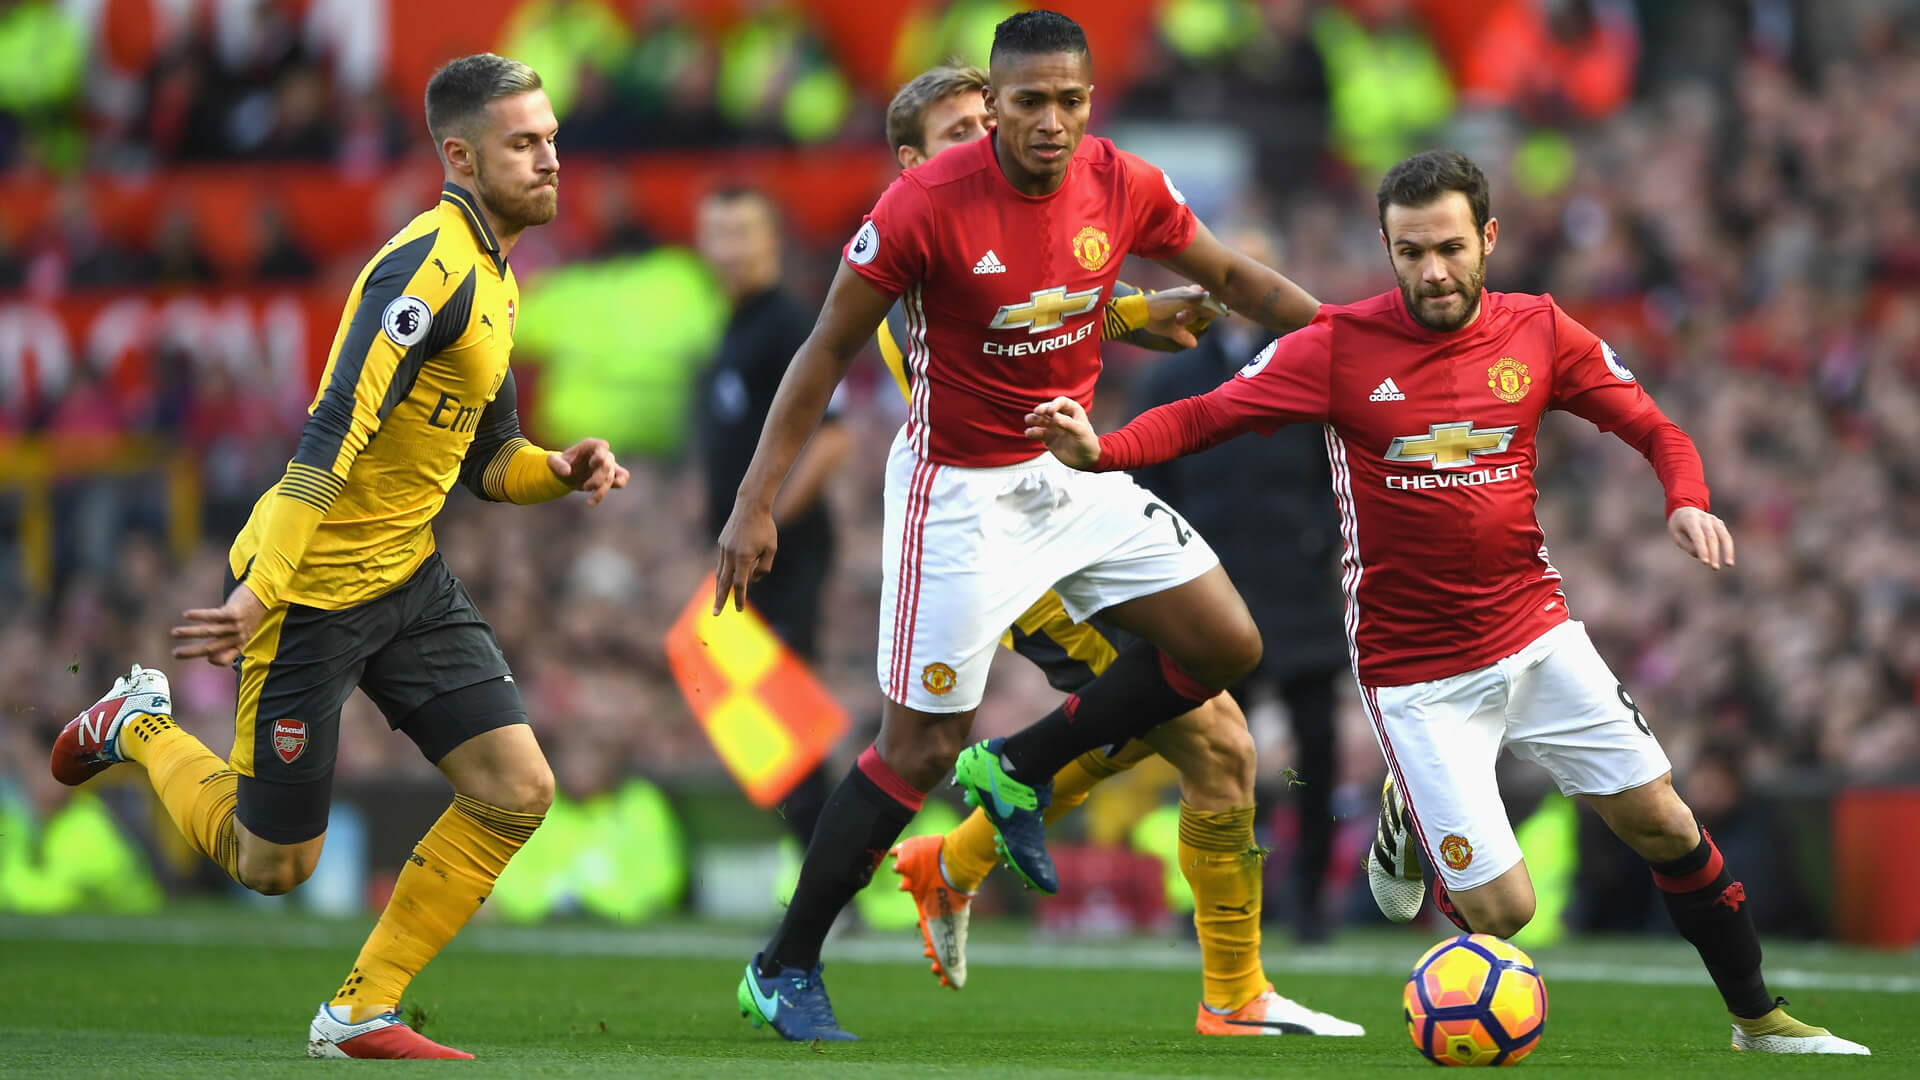 United vs Arsenal - PZBuk opinieA